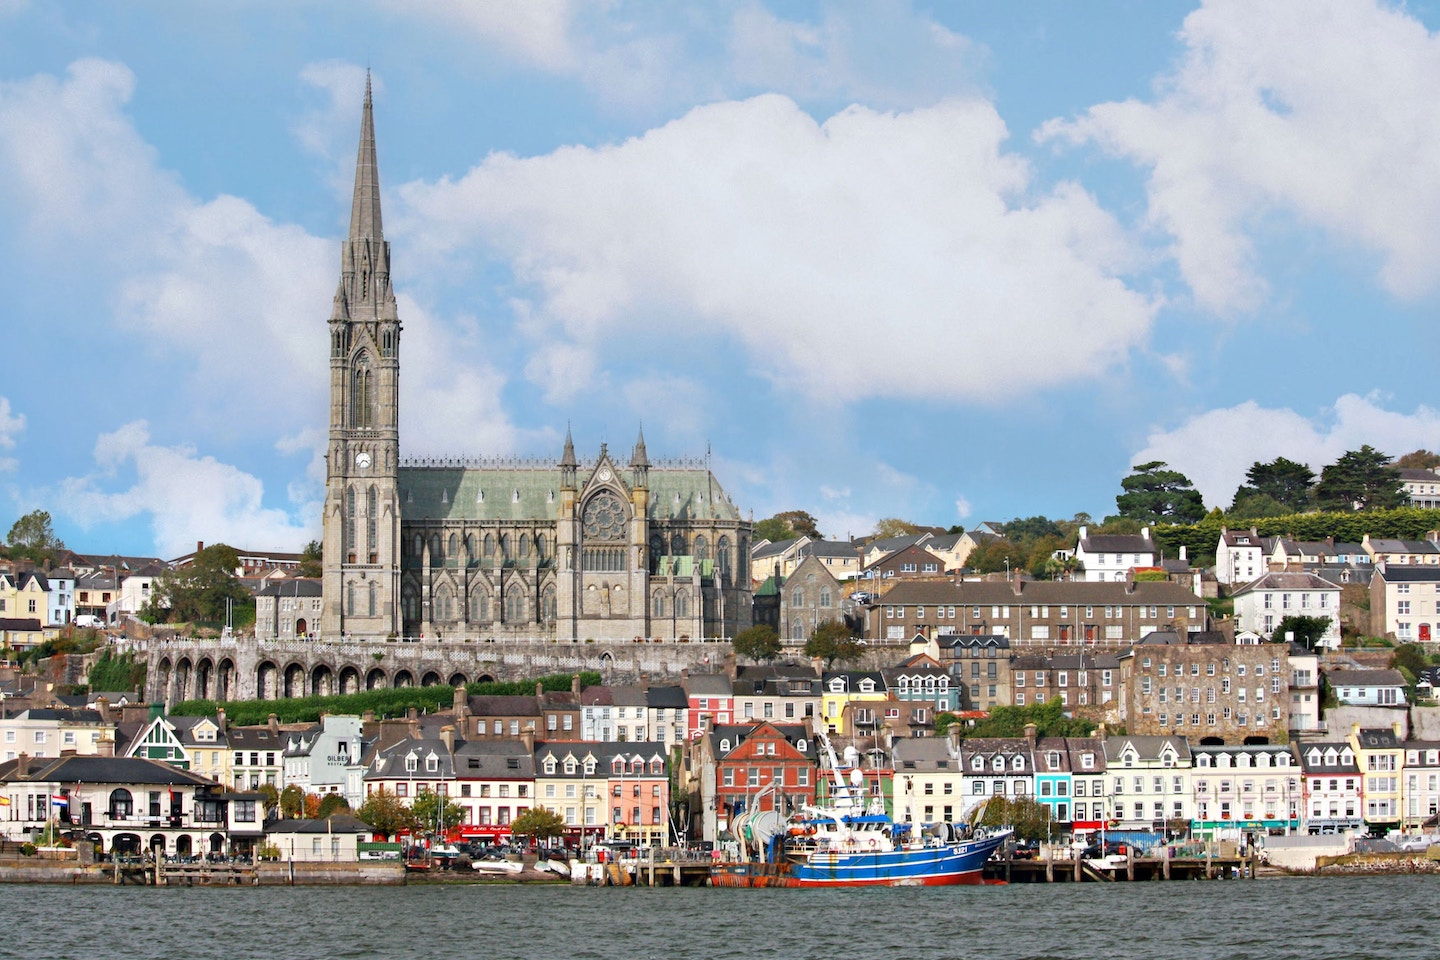 THE 8 MOST CHARMING PLACES TO VISIT IN IRELAND